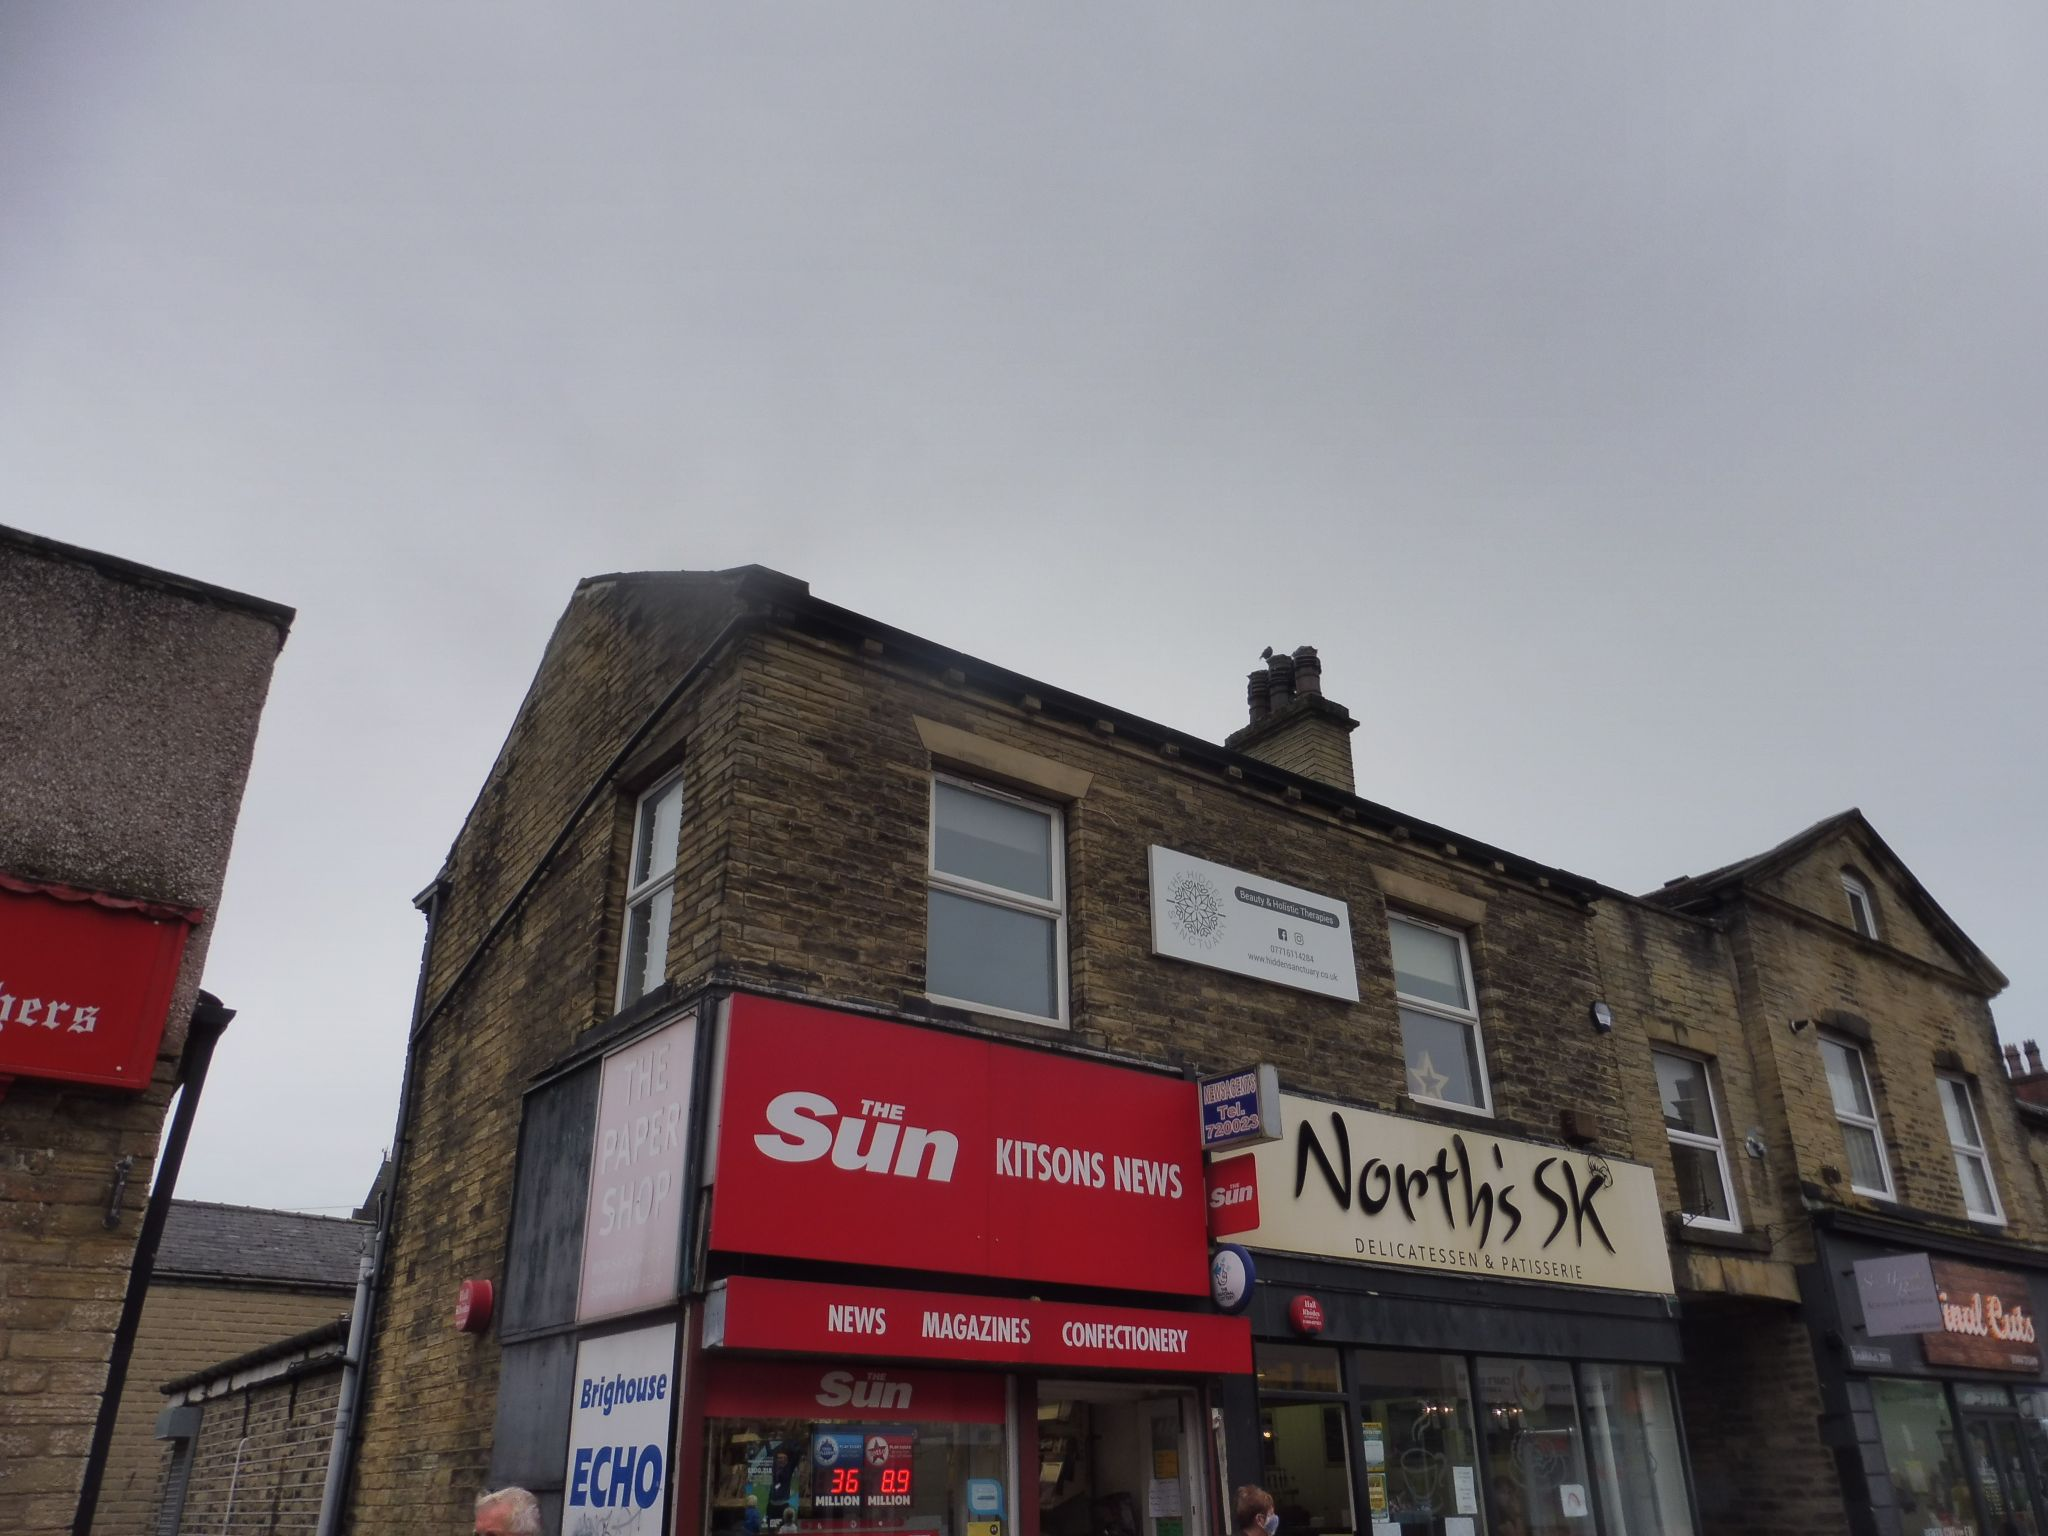 Commercial Property To Let in Calderdale - Photograph 1.